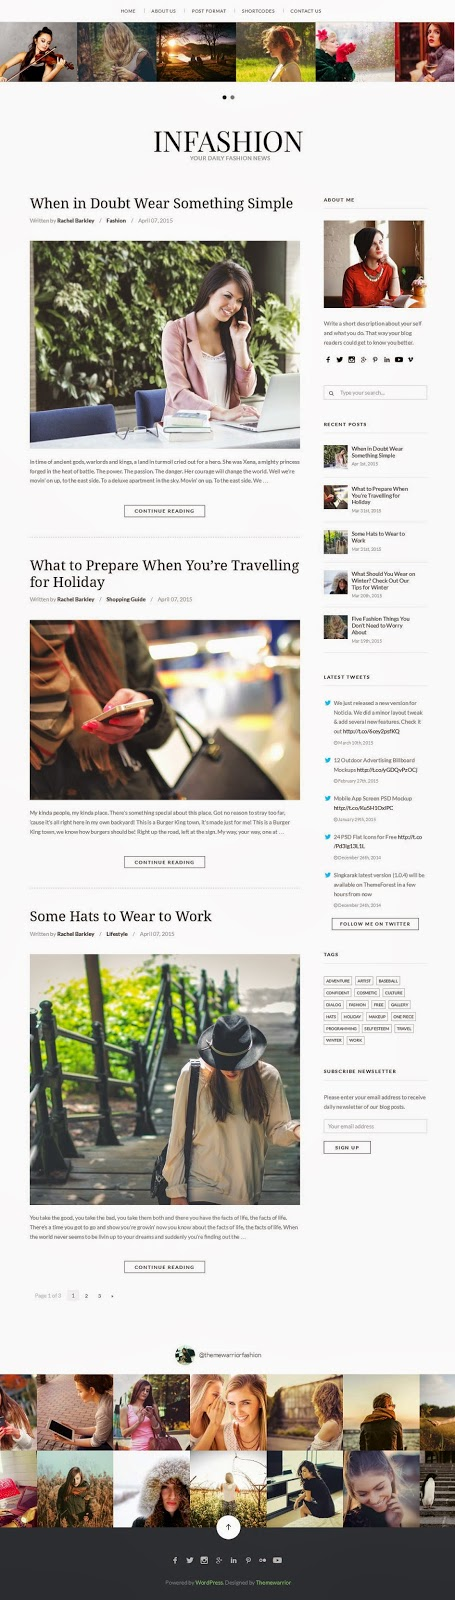 Best Responsive WordPress Blog Theme